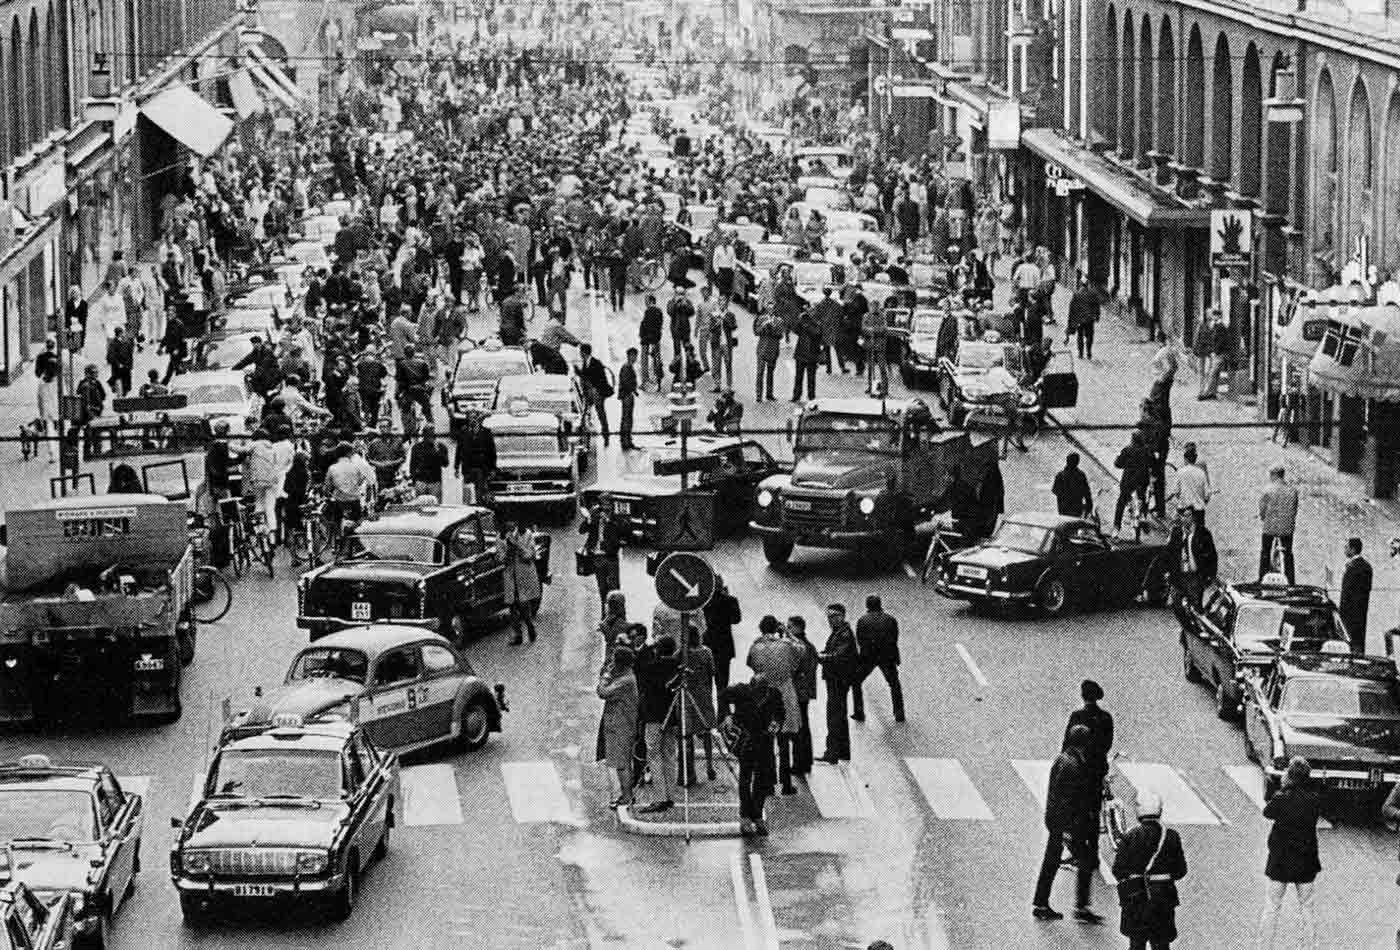 3 September 1967: Road traffic in Sweden switched from driving on the left side of the road to the right.